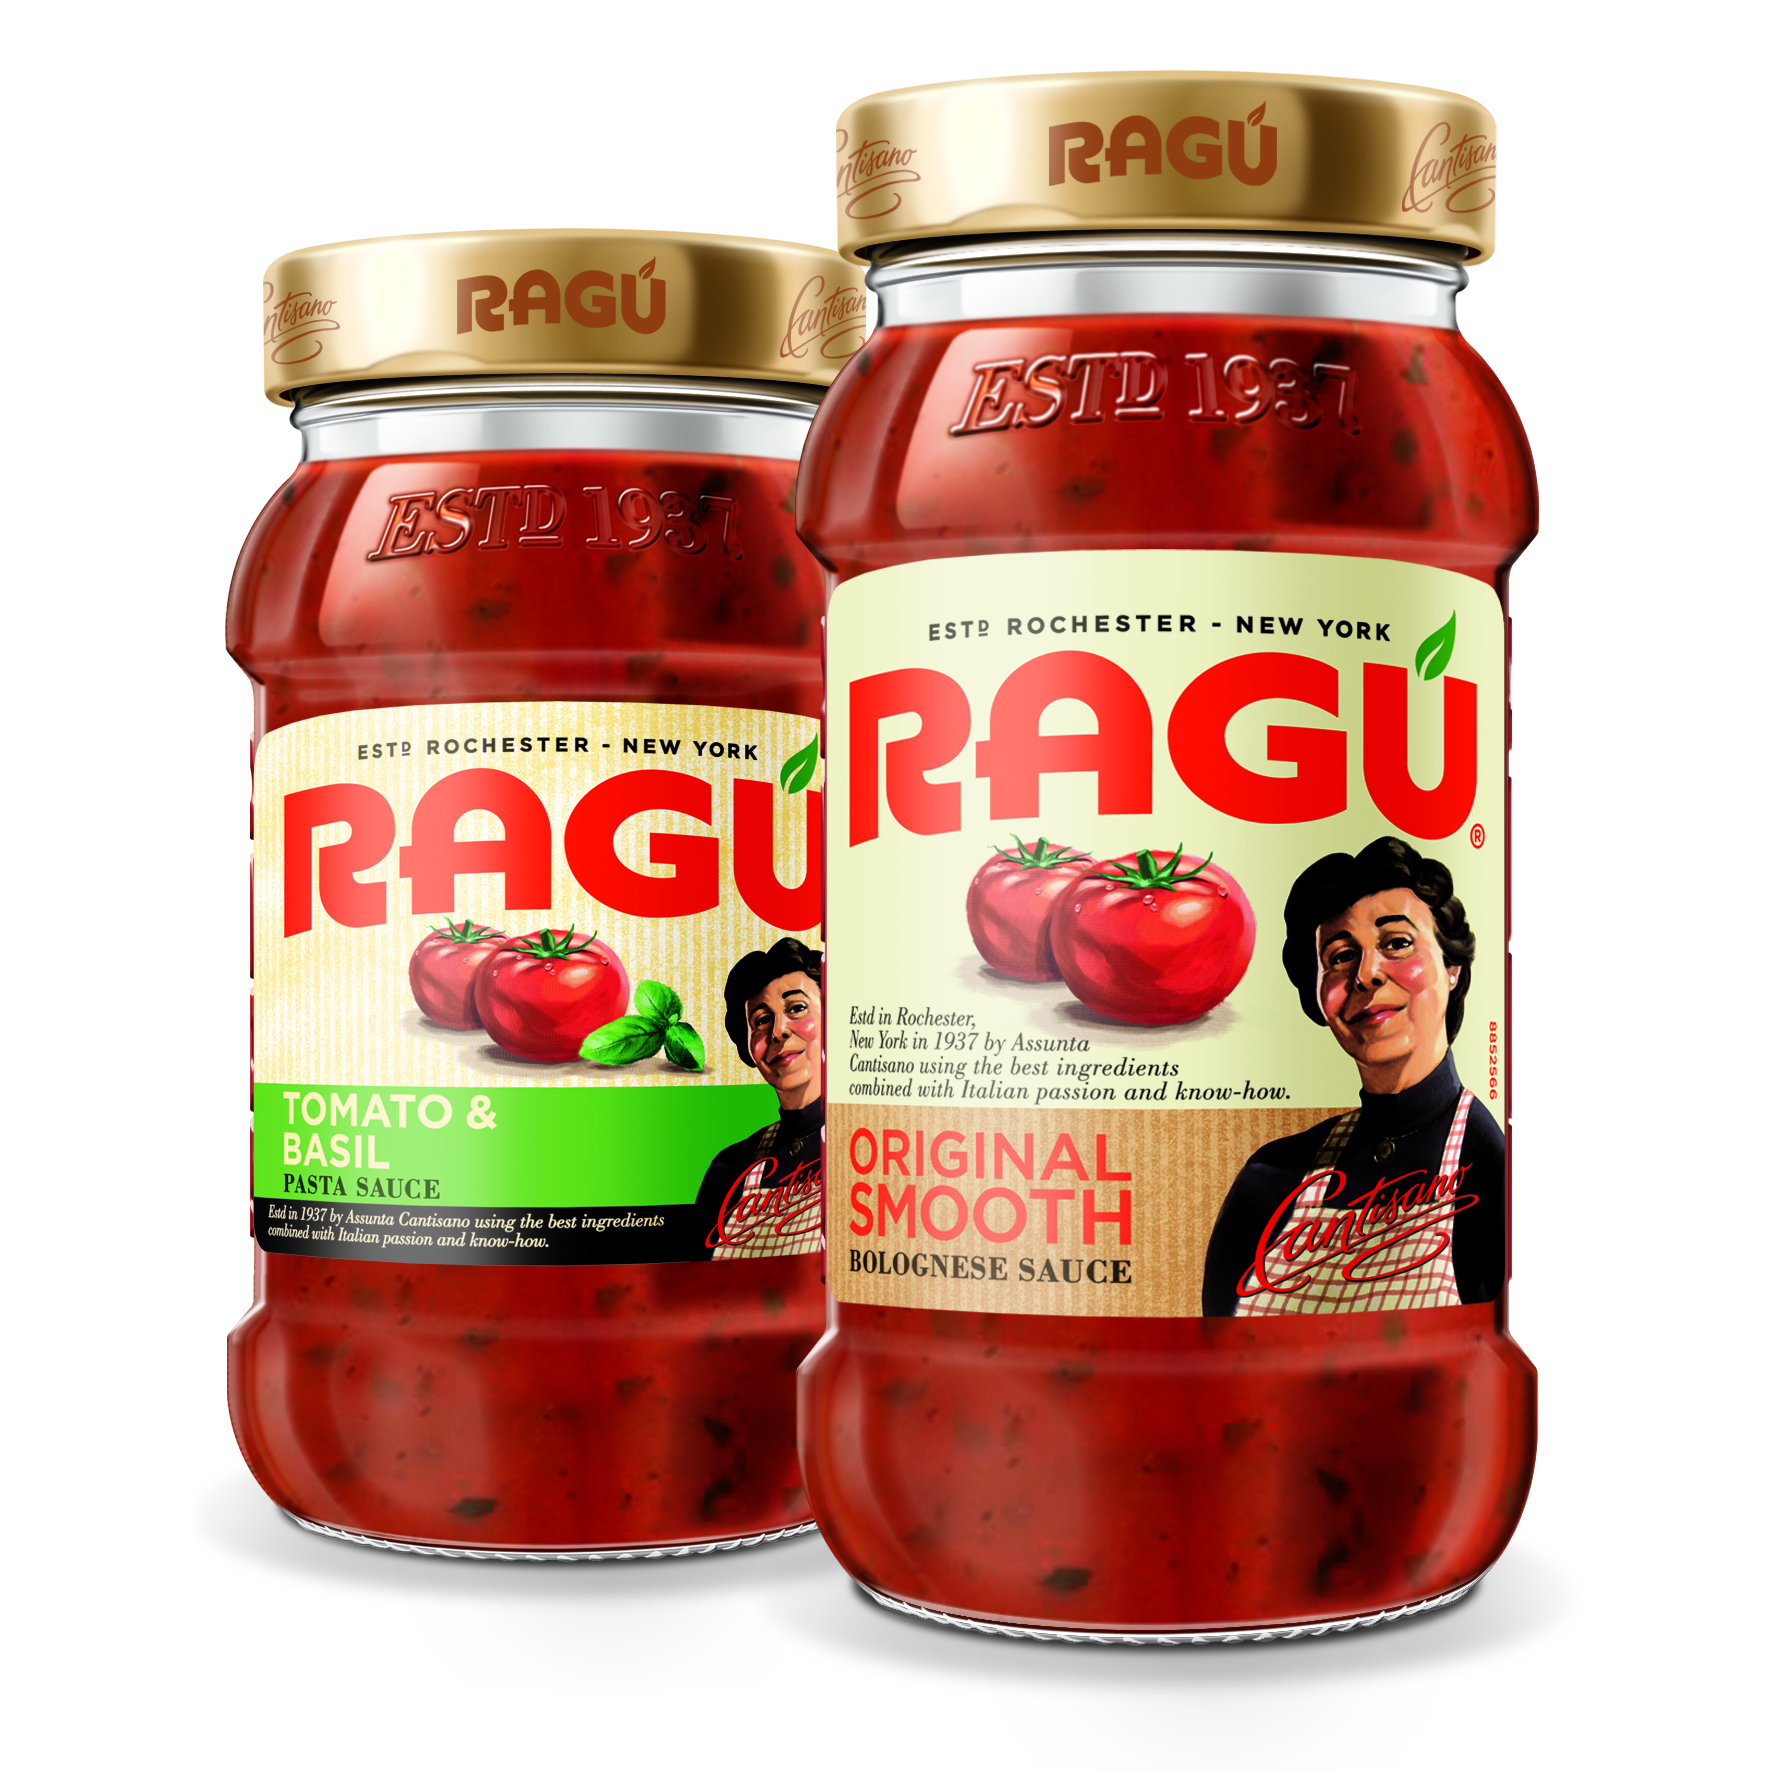 Ragu Original Tomato and Basil